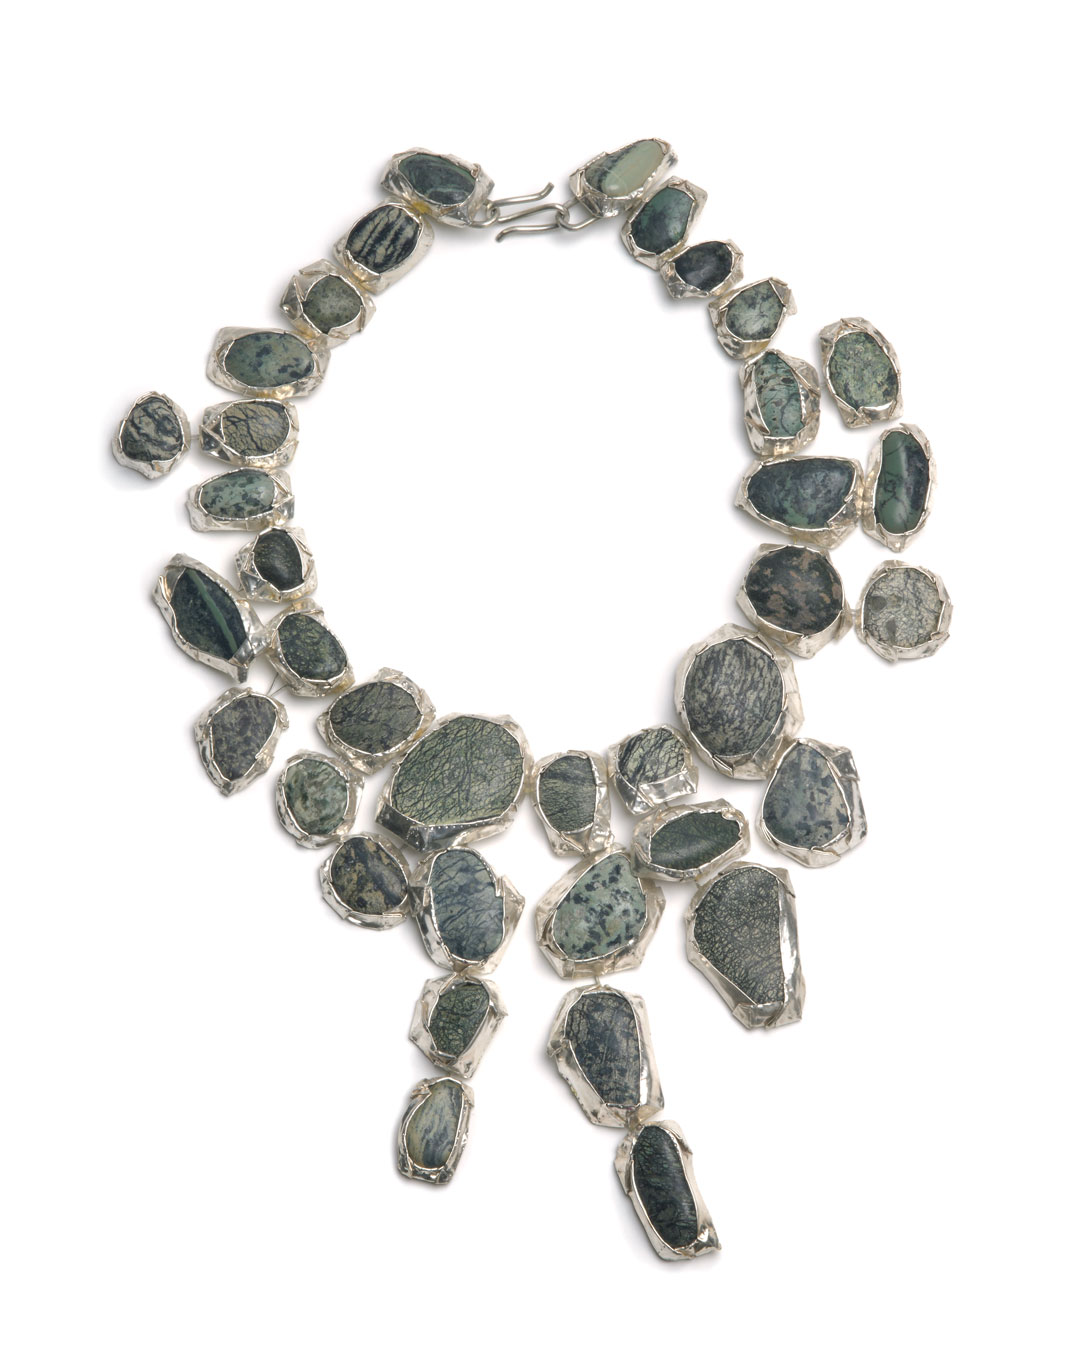 Susanna Loew, Steinreich, 2009, necklace, silver (999 and 935), steel wire, marble pebbles, 230 x 325 x 20 mm, €3300